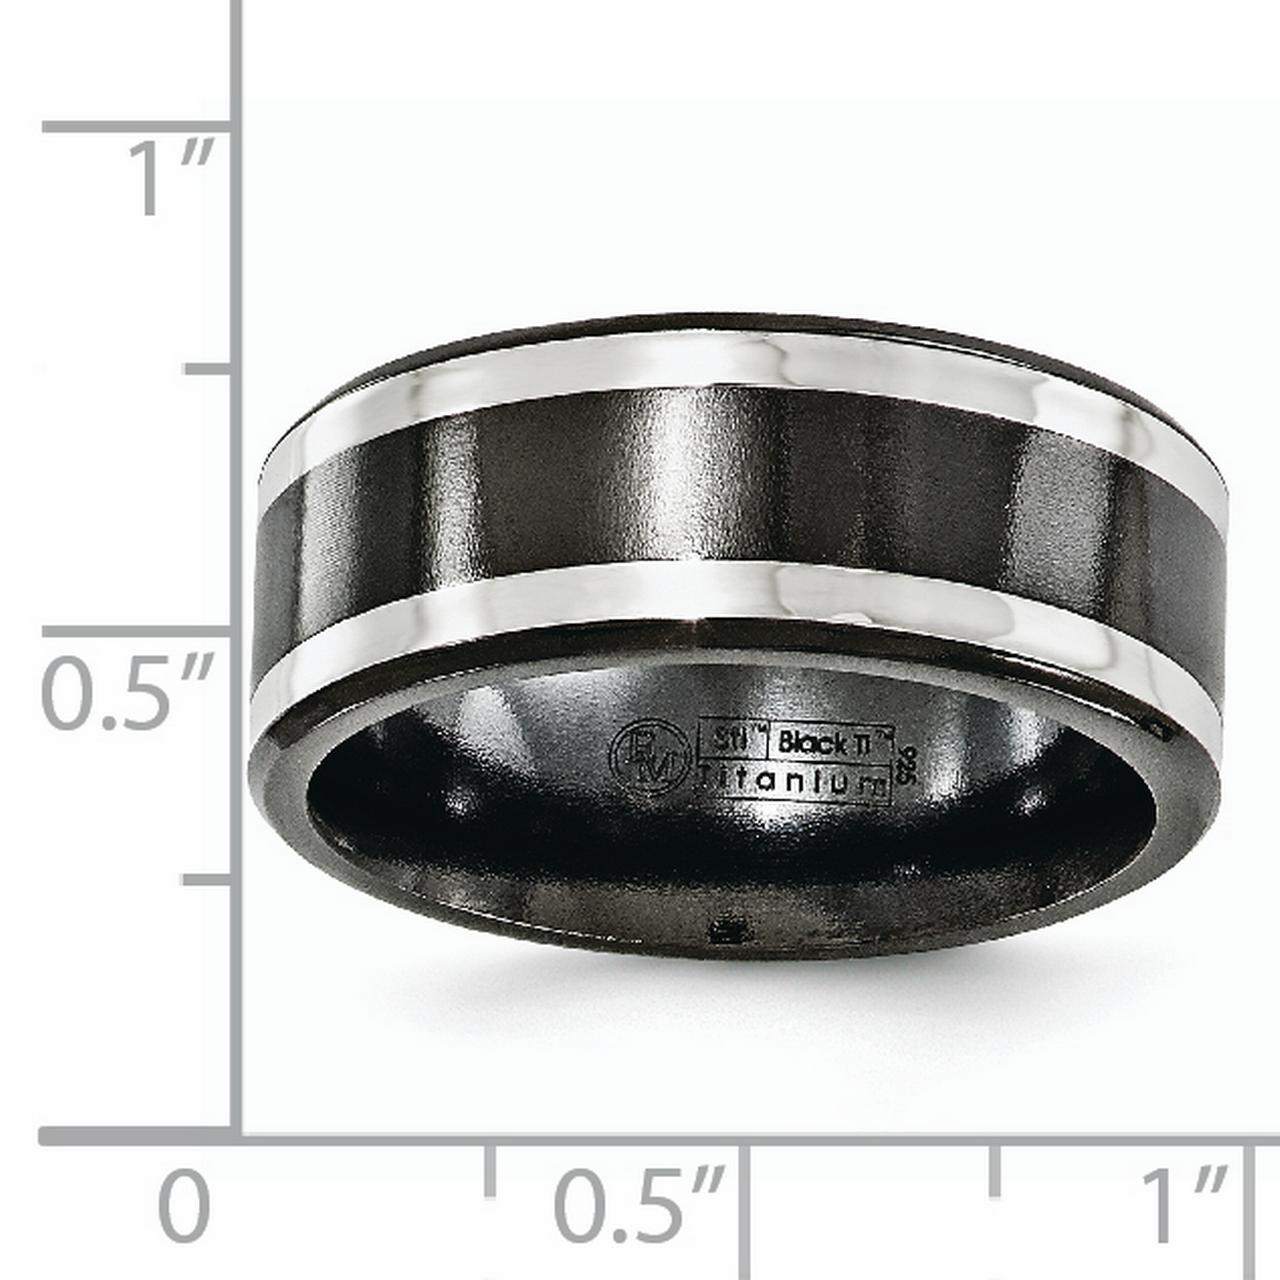 Edward Mirell Black Titanium 14k White Gold 9mm Wedding Ring Band Size 13.00 Man Classic Flat Precious Metal Fine Jewelry Gift For Dad Mens For Him - image 3 de 6